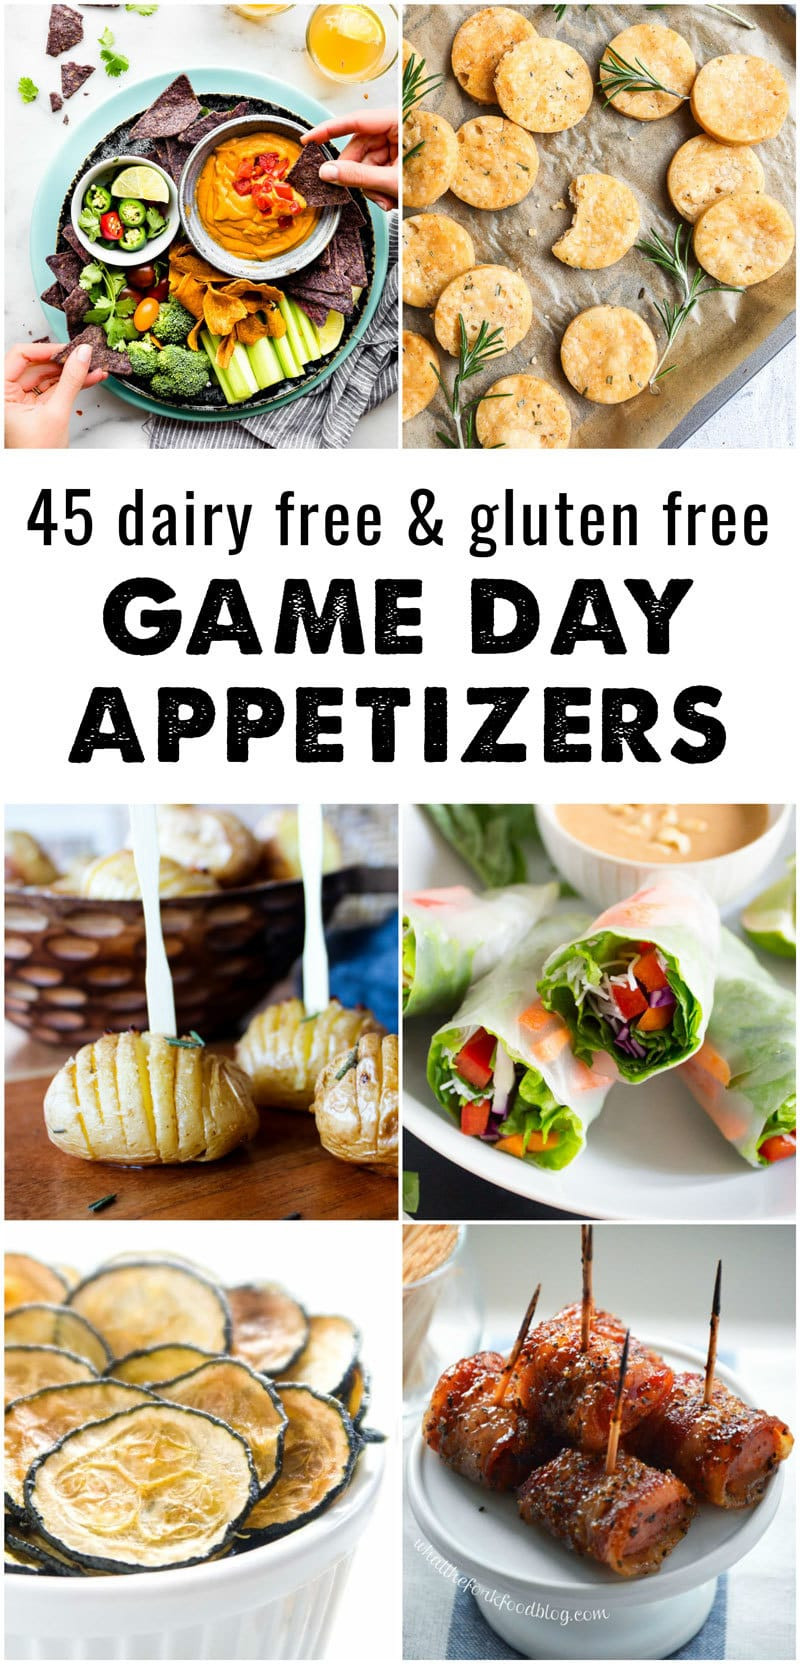 Vegan Gluten Free Appetizers  45 Dairy Free and Gluten Free Appetizers • The Fit Cookie